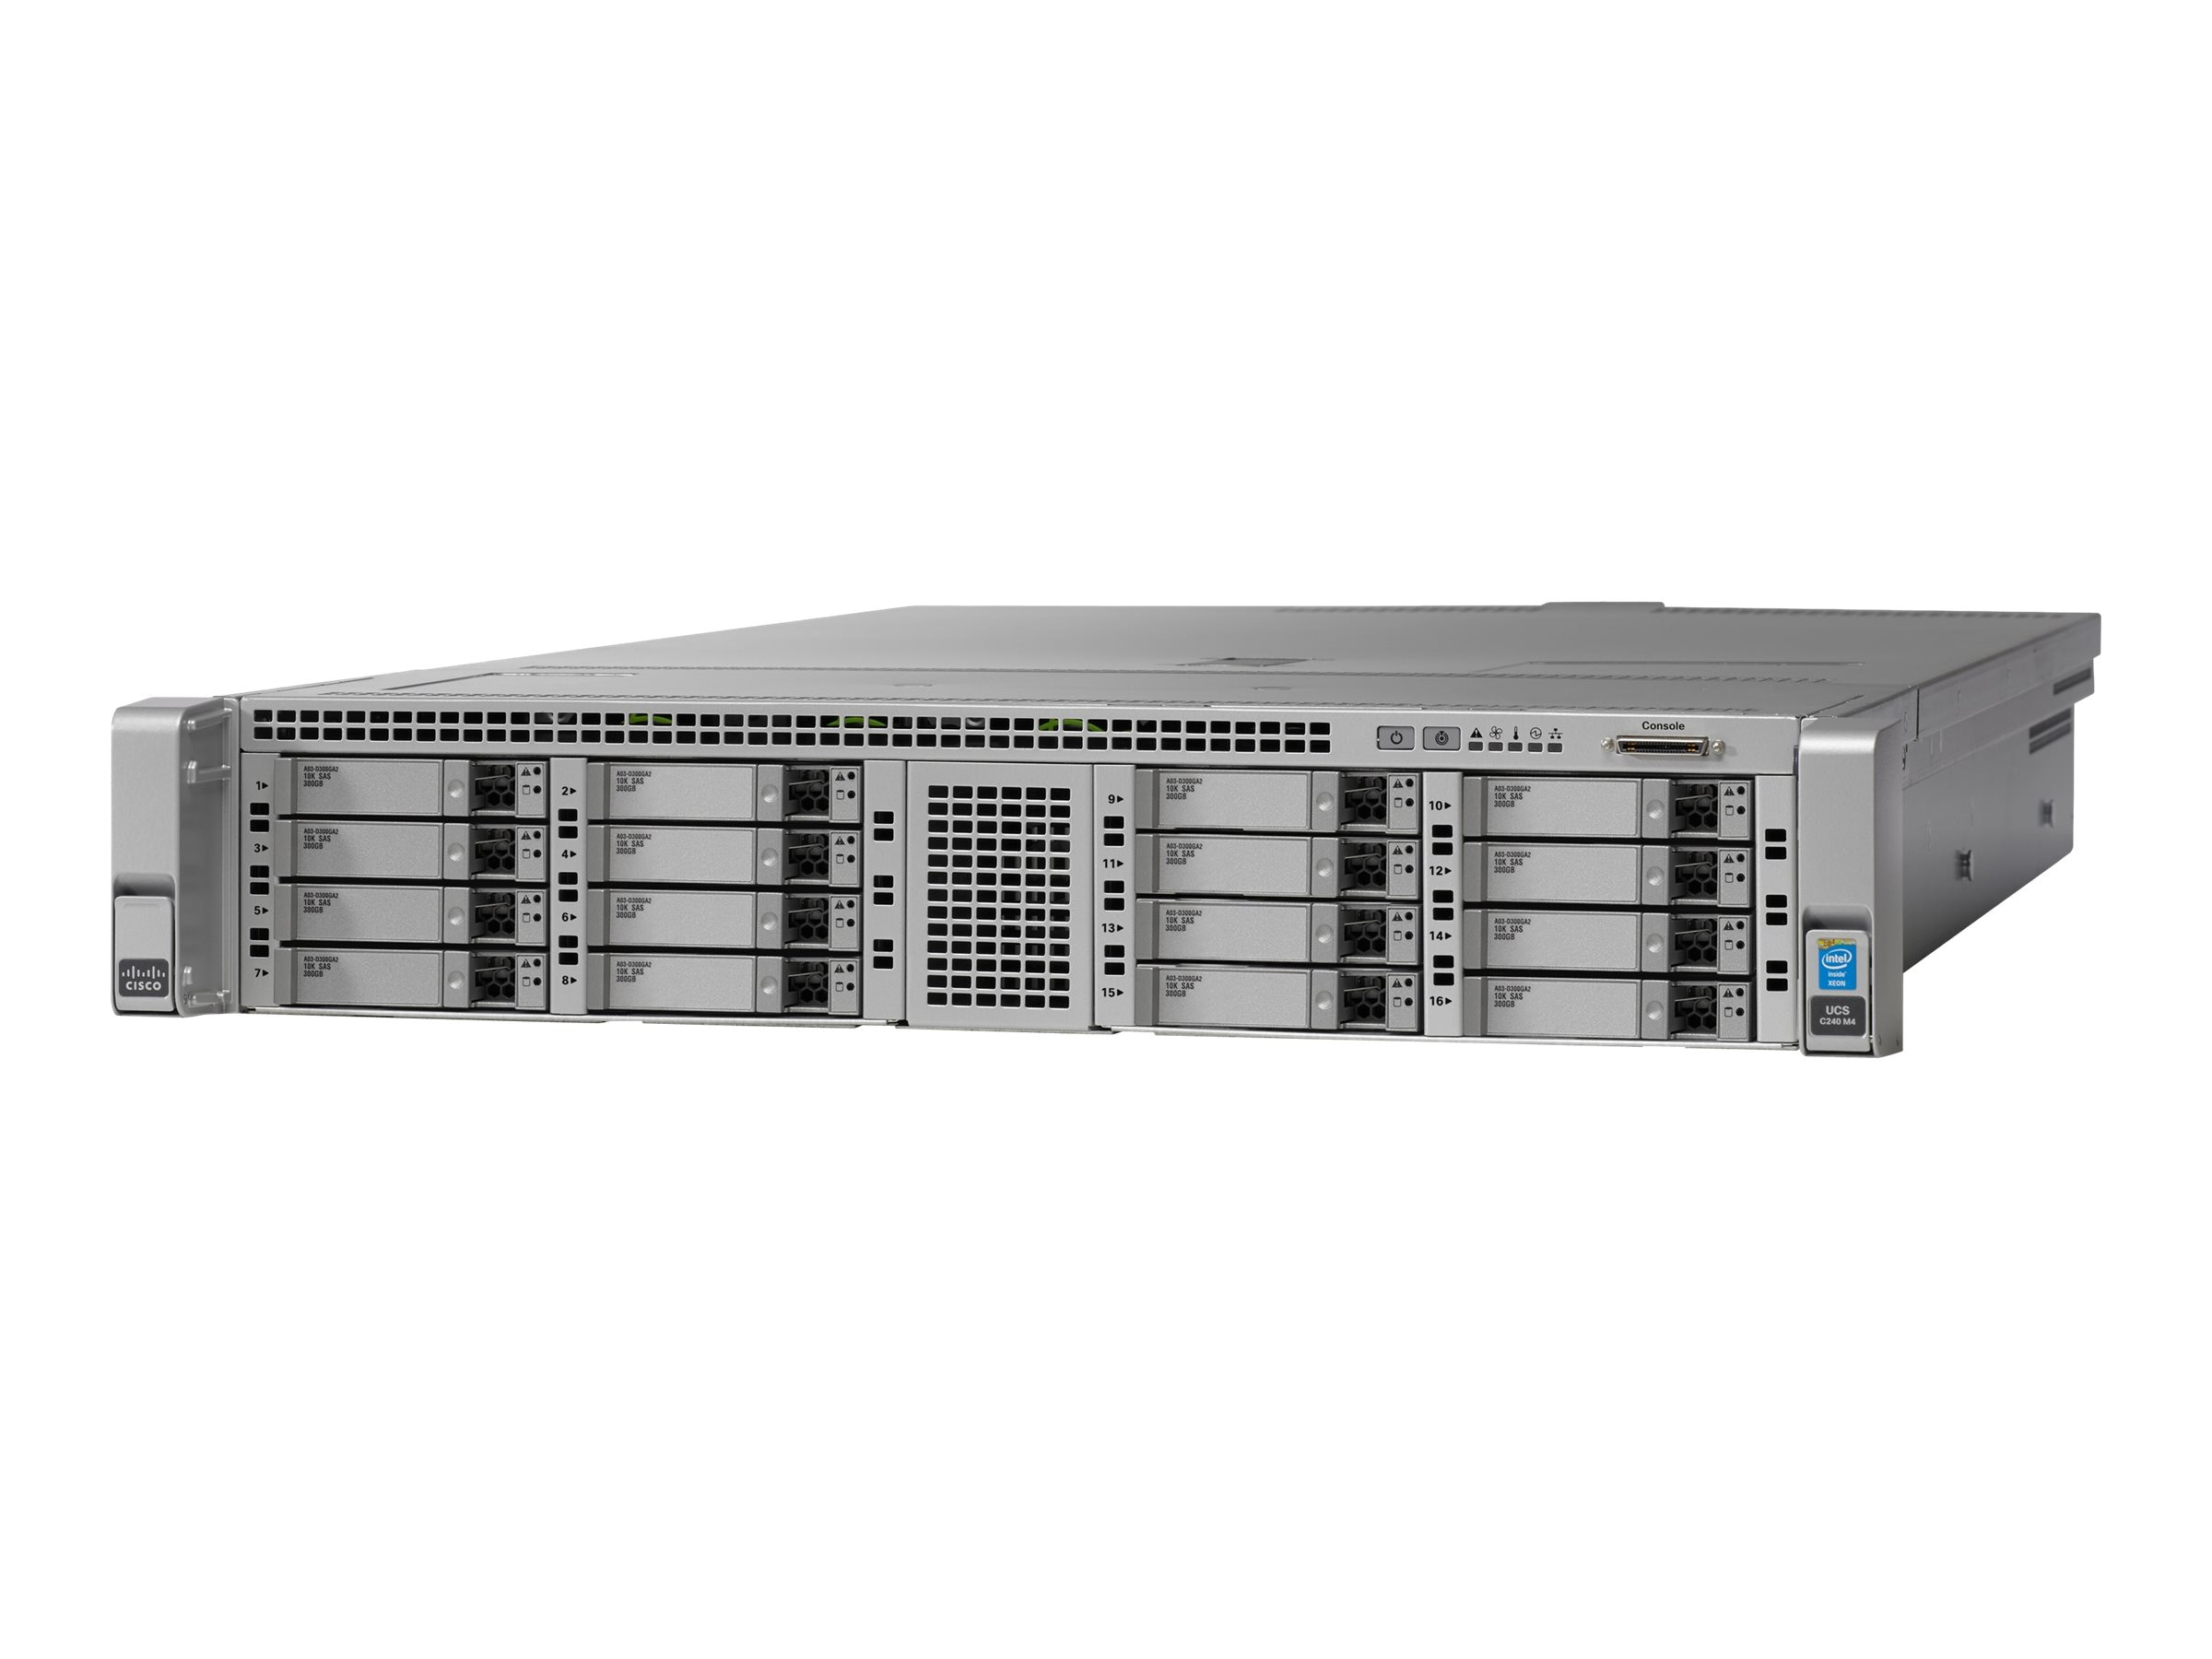 Cisco Barebones, UCS C240 M4 16xSFF without CPU, Memory, HDD, SSD, PCIe, Rail Kit, or Power Supply